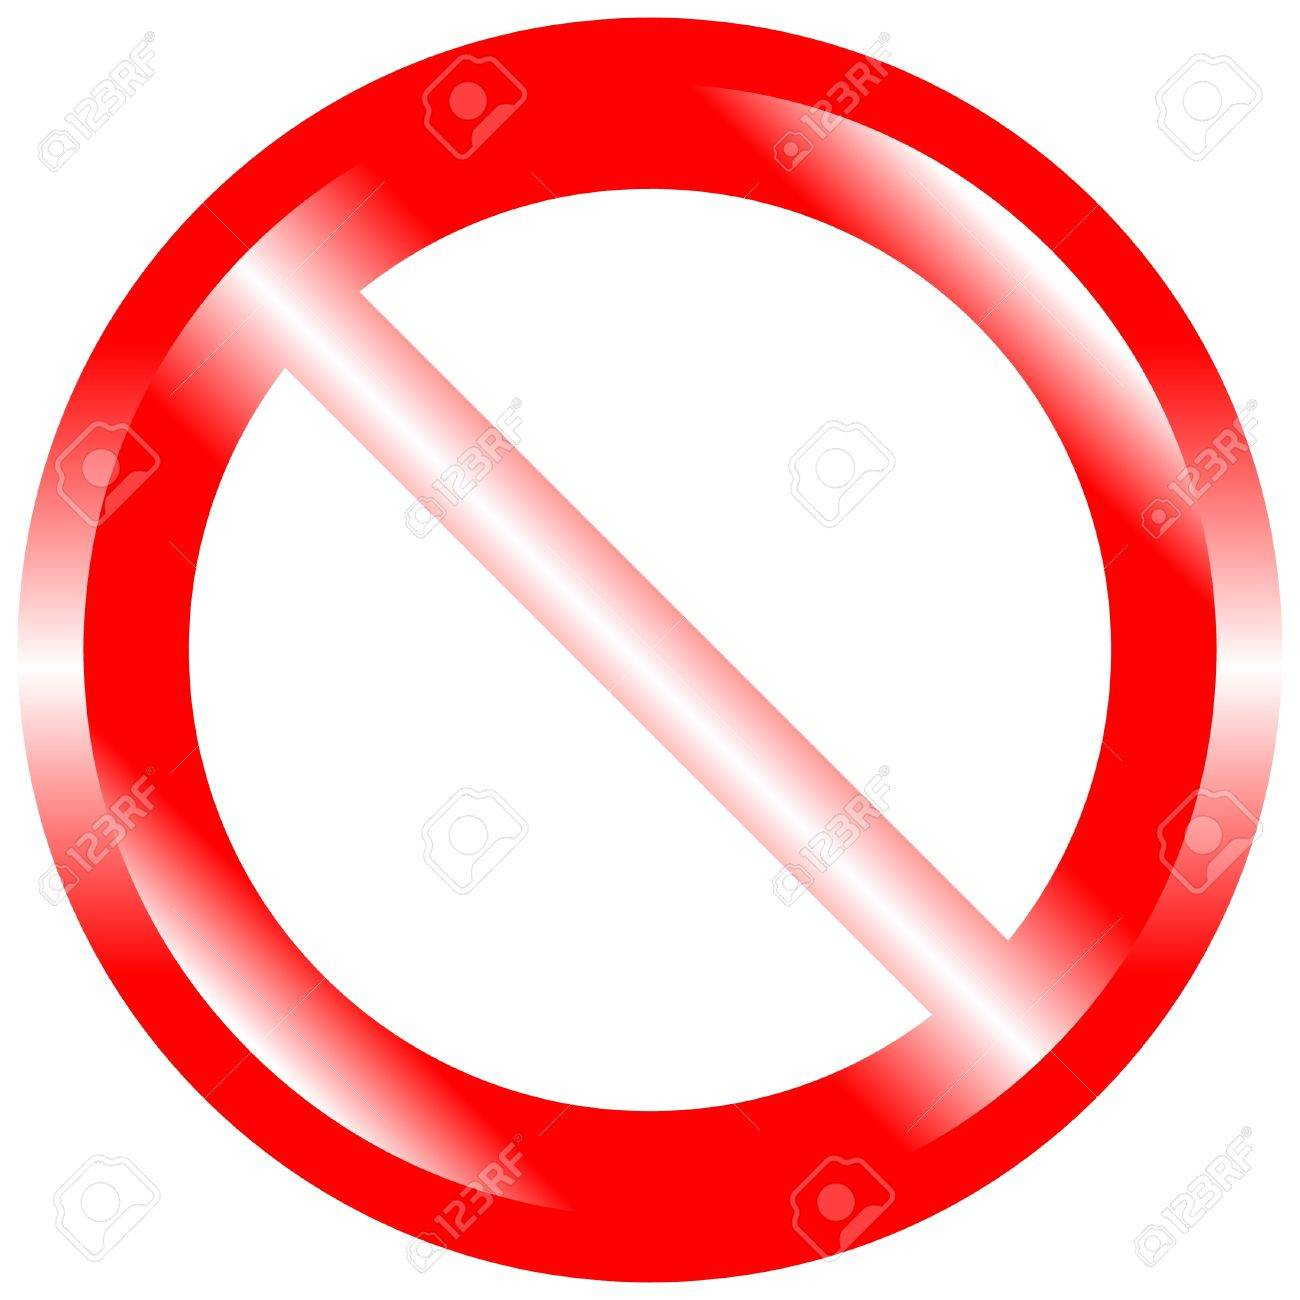 Illustration of prohibited sign on isolated white background Stock Vector - 10275484